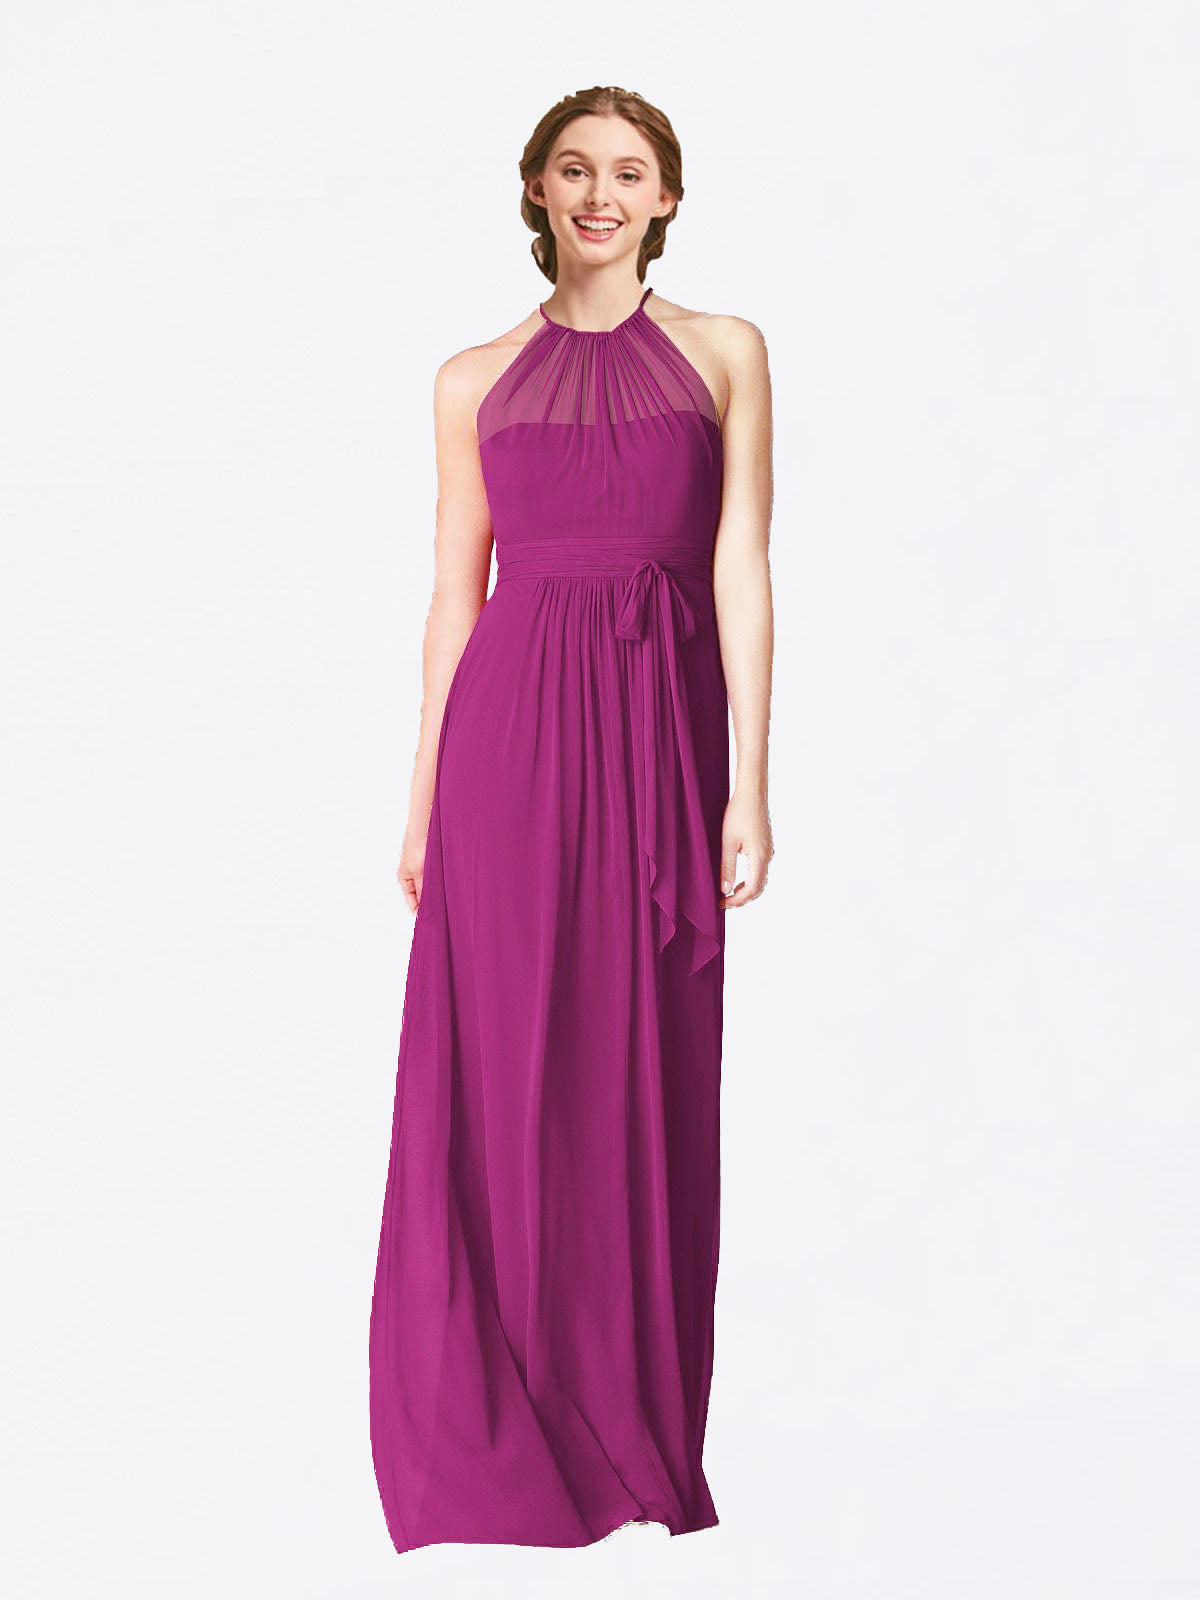 Long A-Line Halter Sleeveless Wild Berry Chiffon Bridesmaid Dress Laura